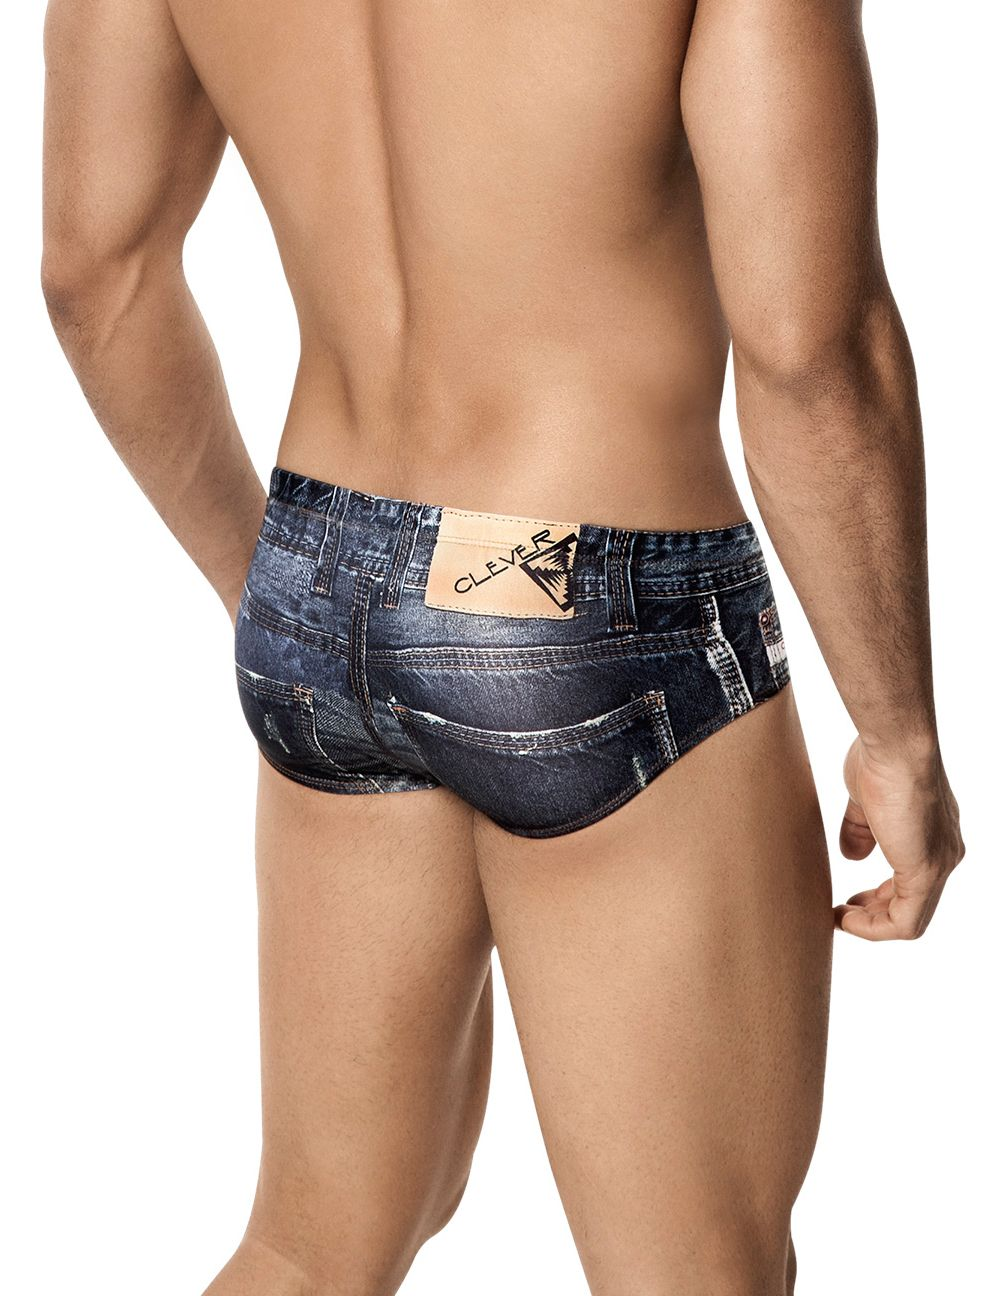 Male underwear model wearing Clever 5201 Denim Jean Latin Brief available at www.MensUnderwear.io